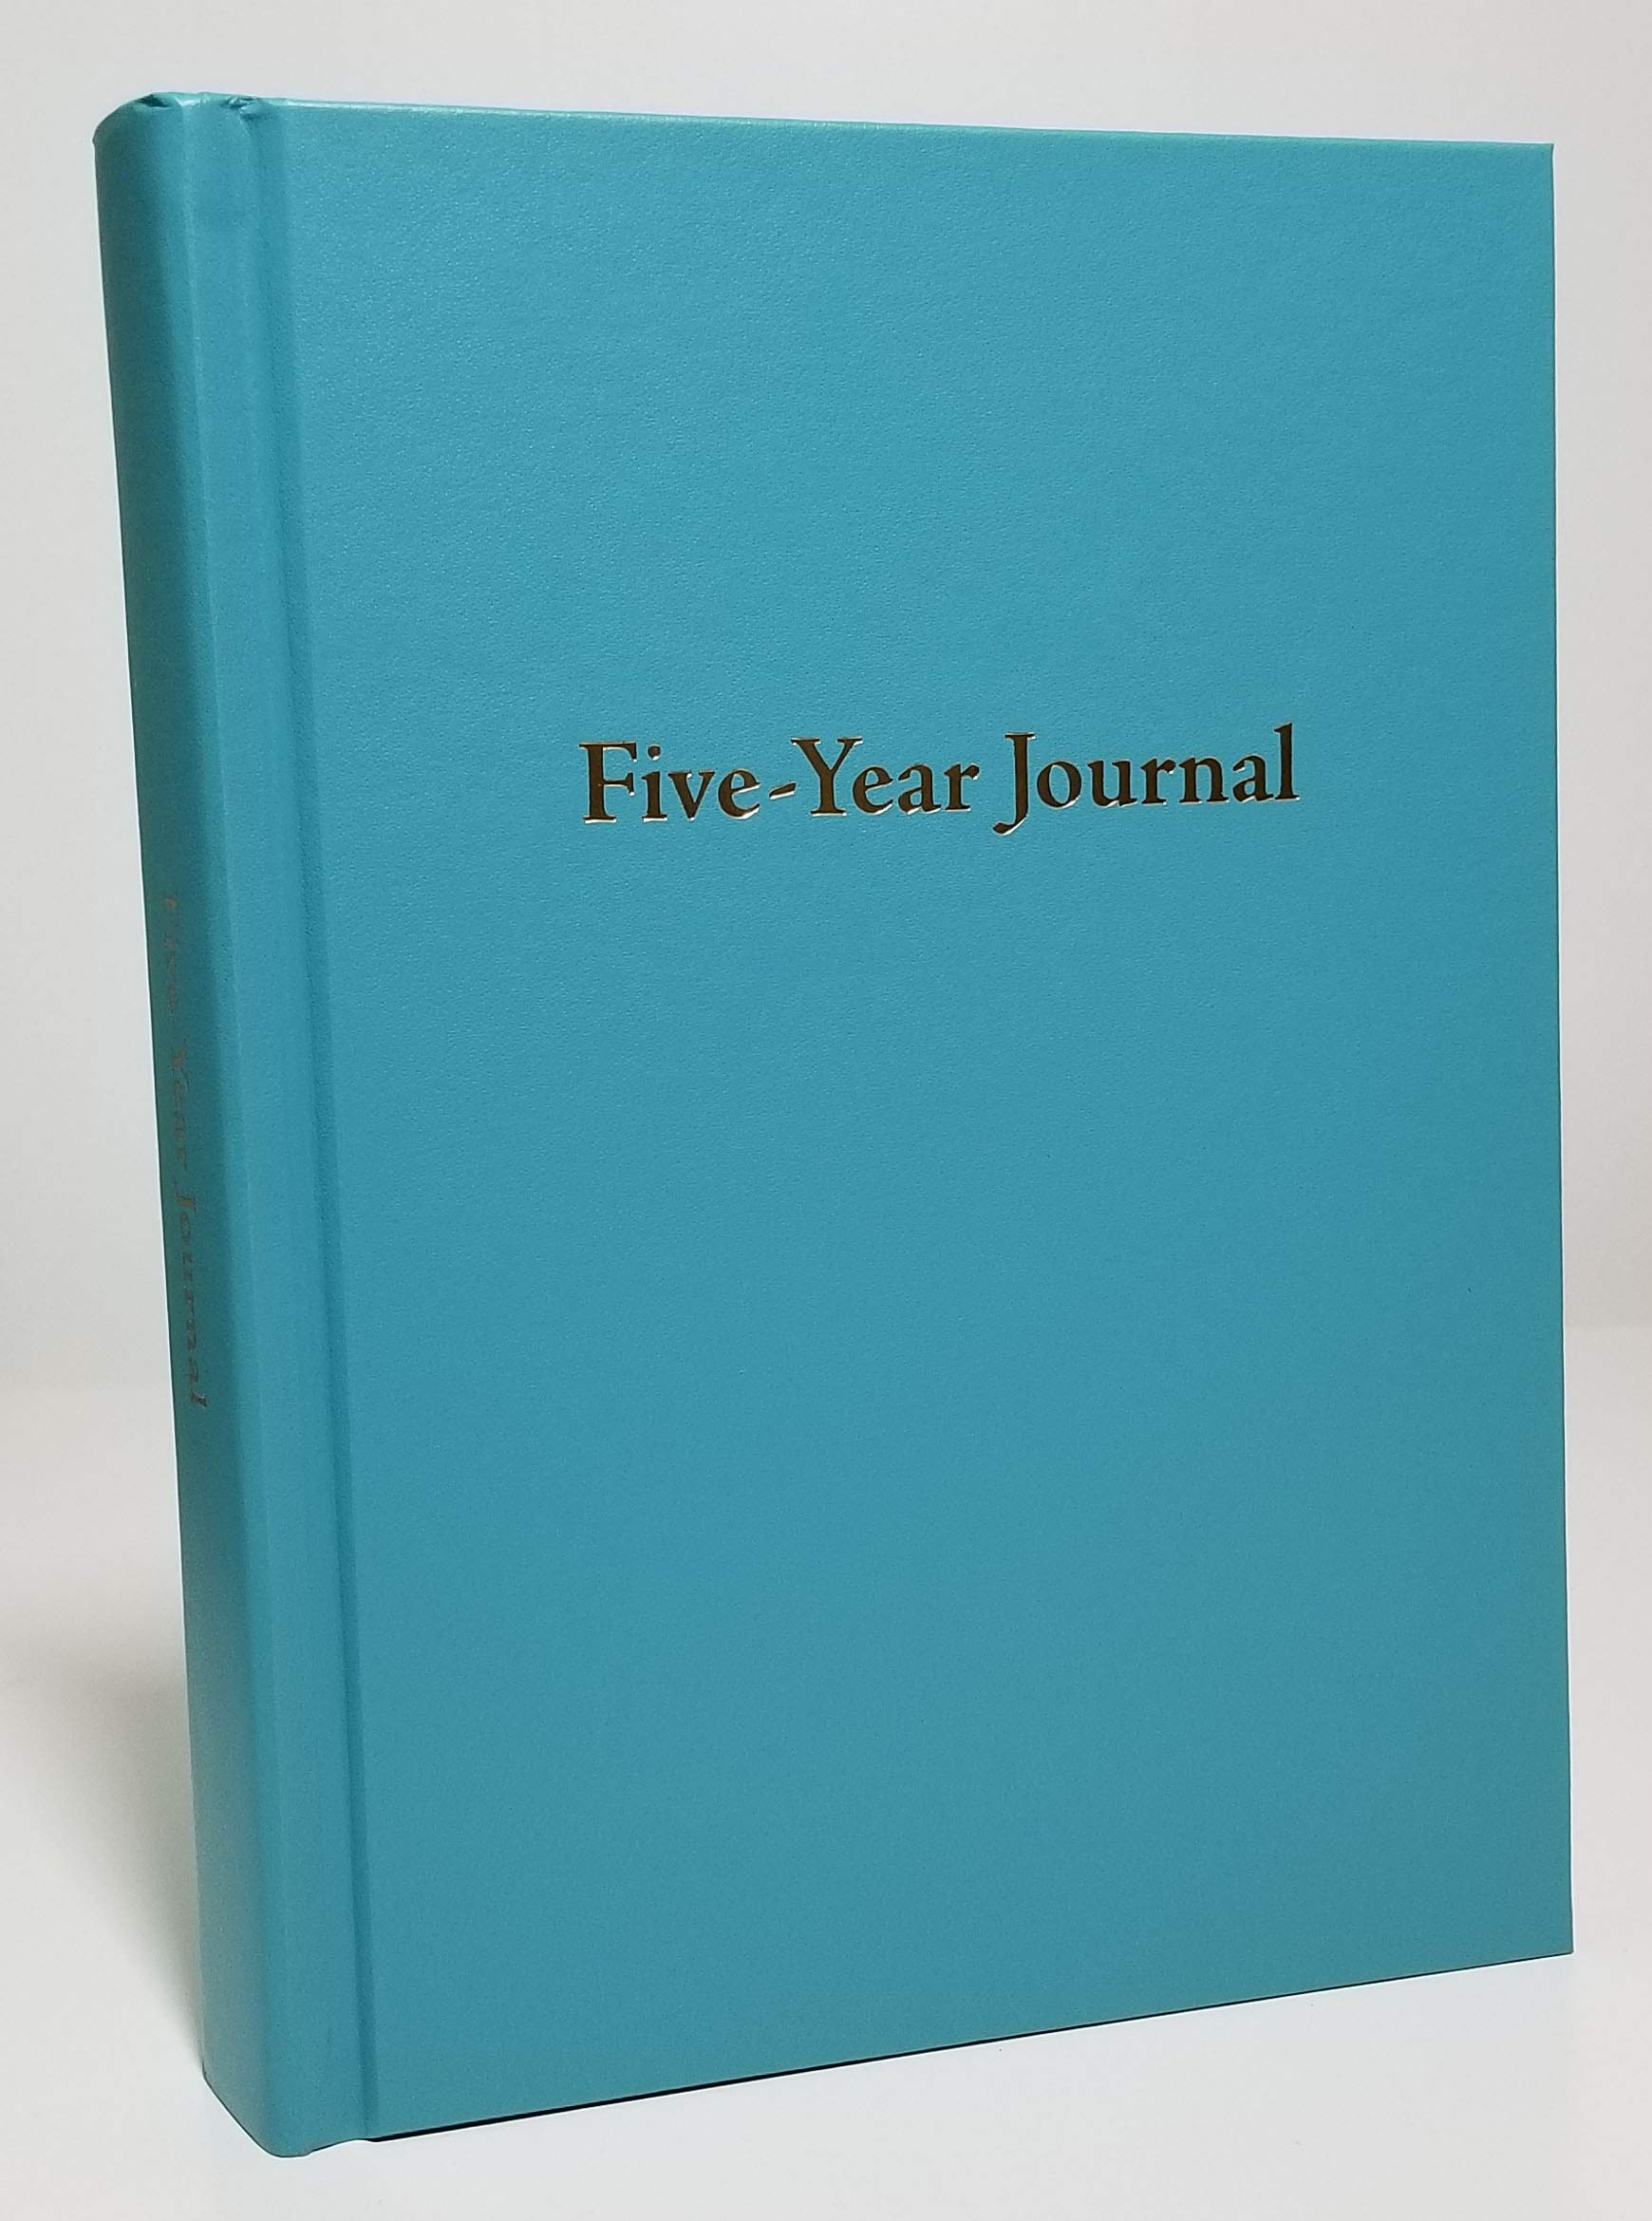 Hard Cover 5 Year Journal | The Easiest to Use Five Year Journal | Quick and Easy Five Year Daily Journal System | 6x8.25 Inch Size (Turquoise)